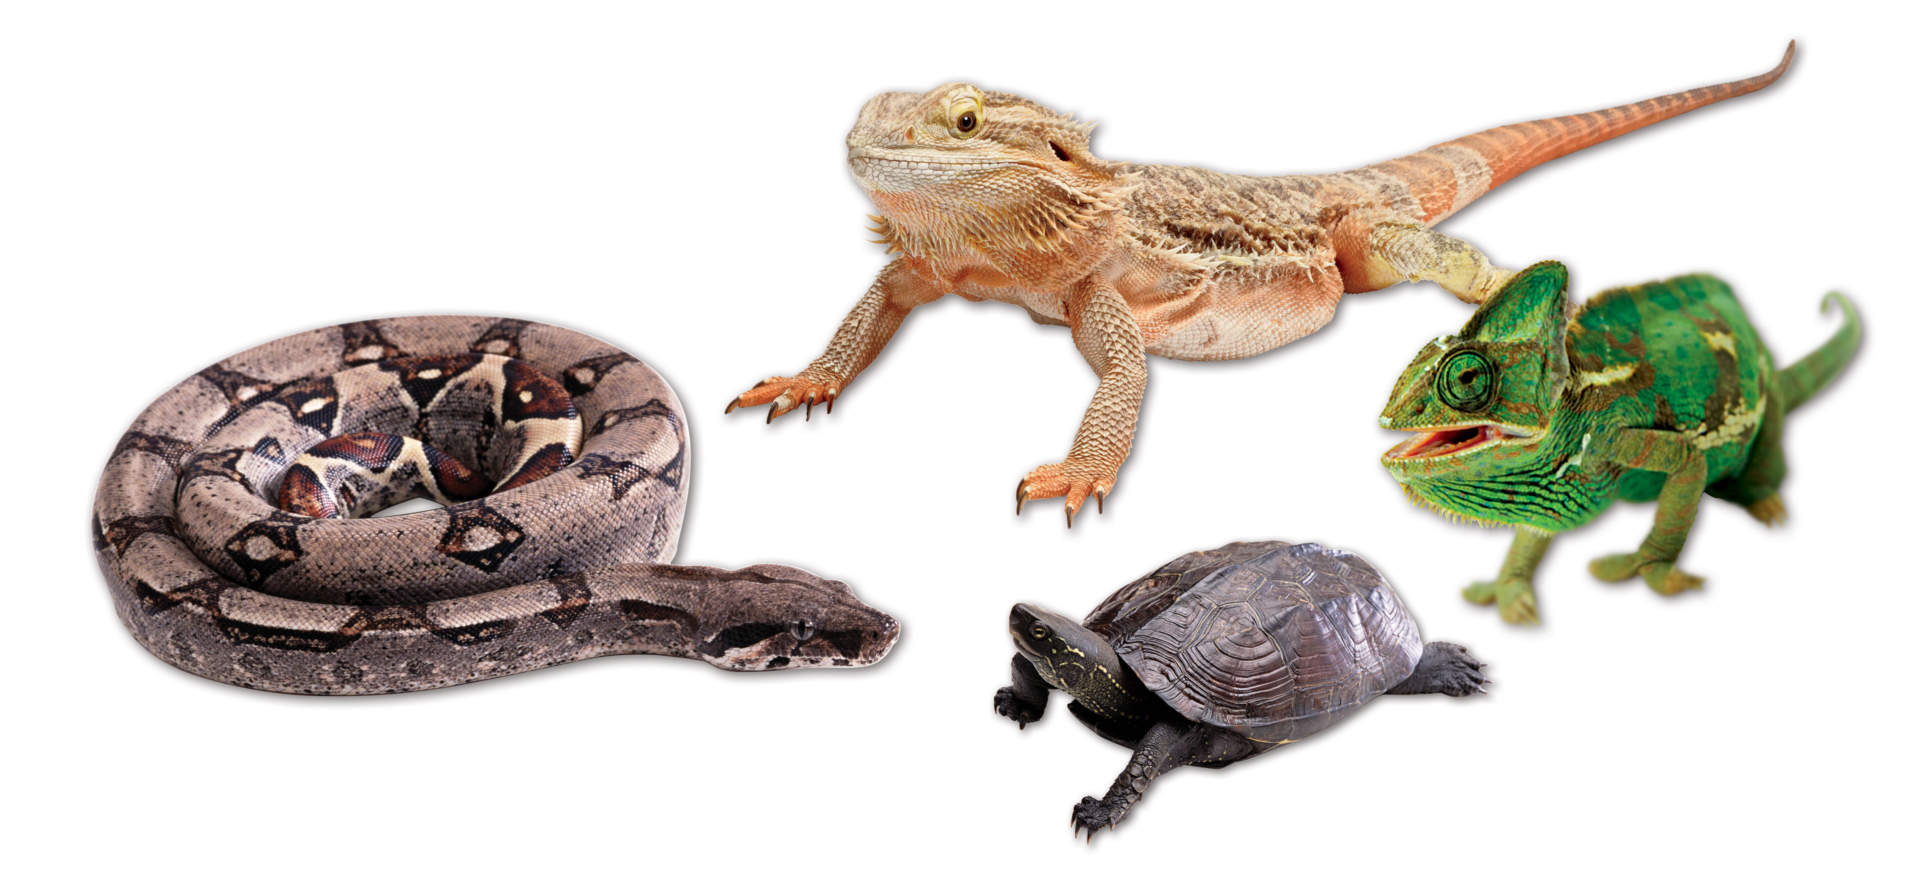 Picture of 4 reptiles: snake, bearded dragon lizard, turtle and chameleon